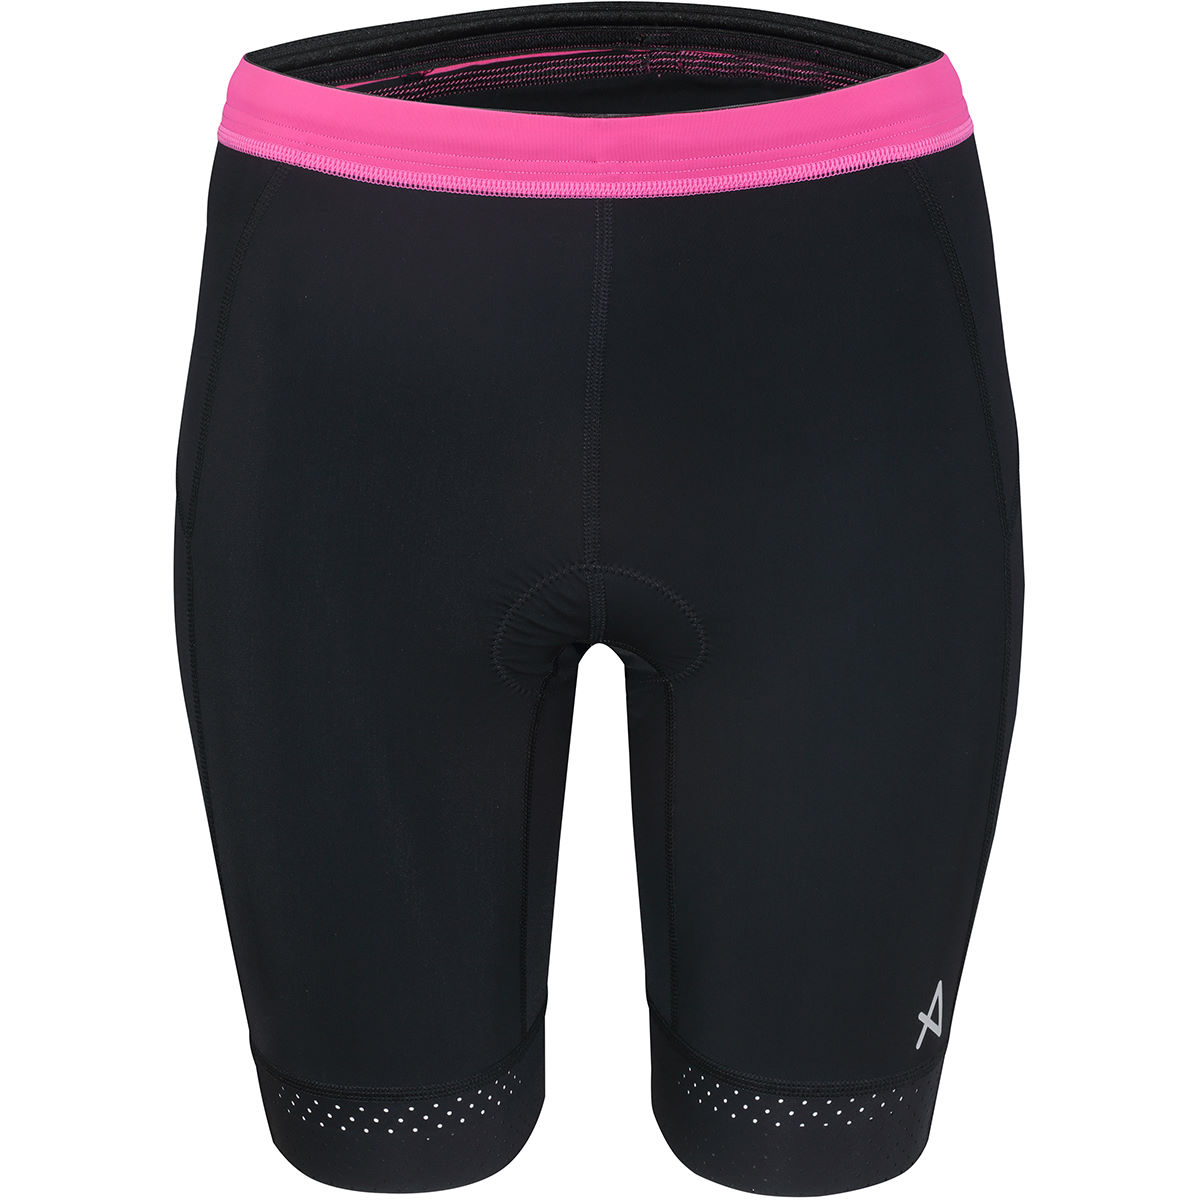 HUUB Women's Tana Tri Shorts - Extra Small Black/Pink | Tri Shorts